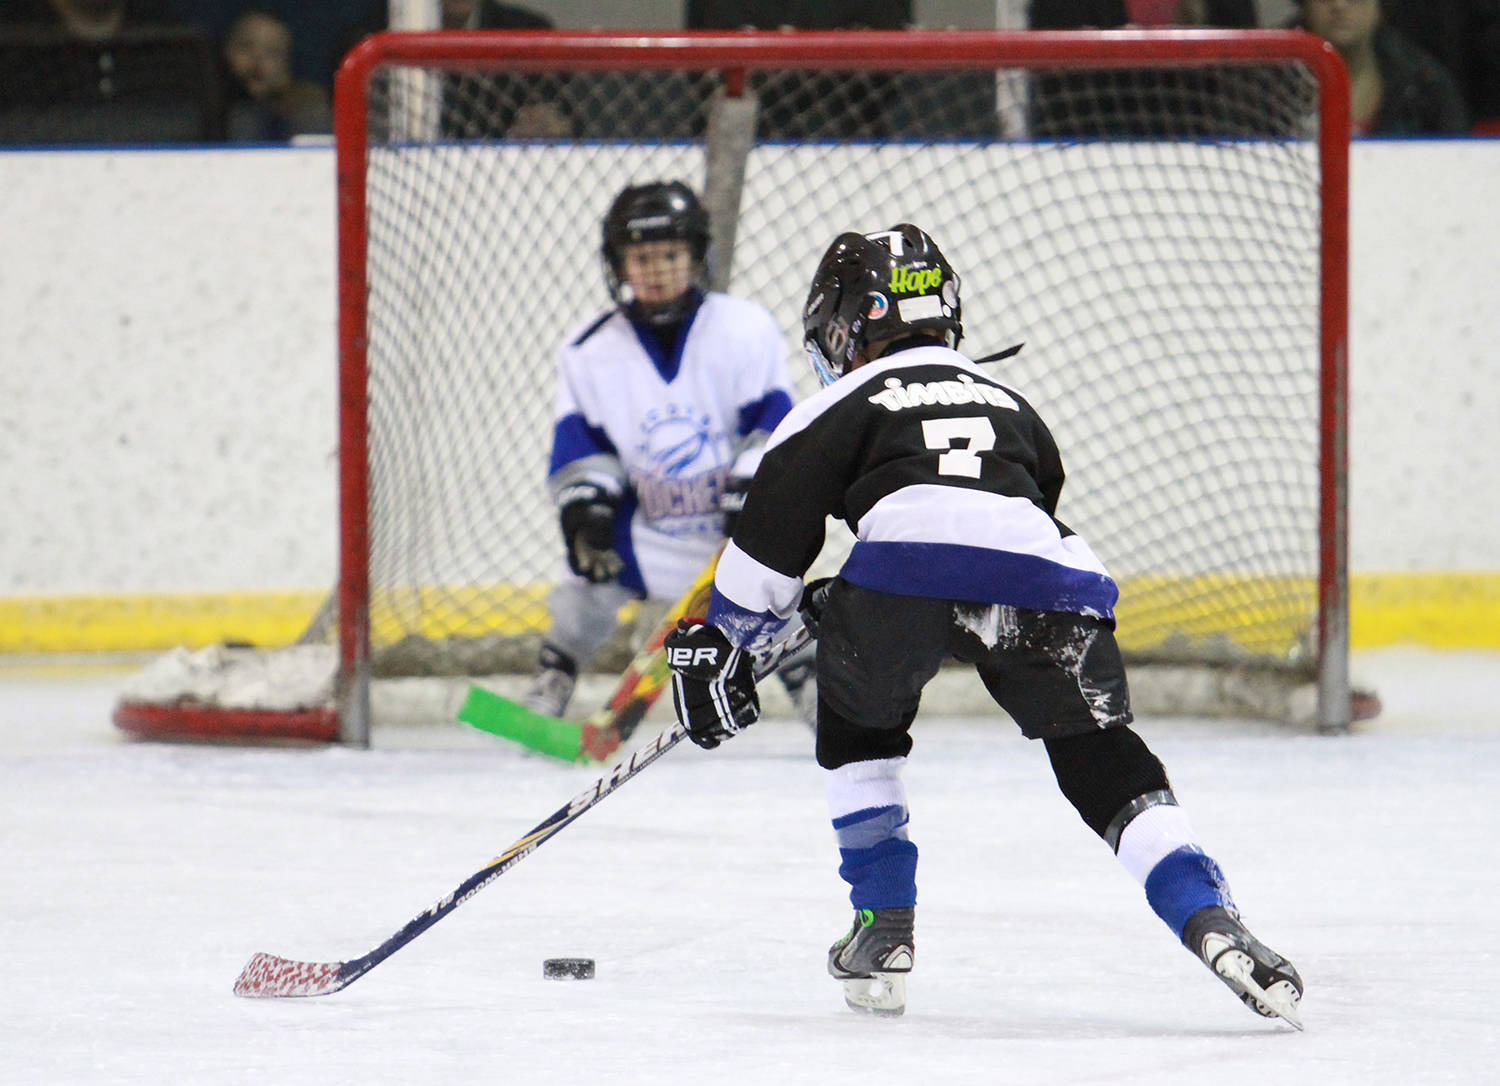 Minor hockey in Ponoka has started for many of the teams with practices and pre-season games for some of the older teams having been played this past weekend. File photo